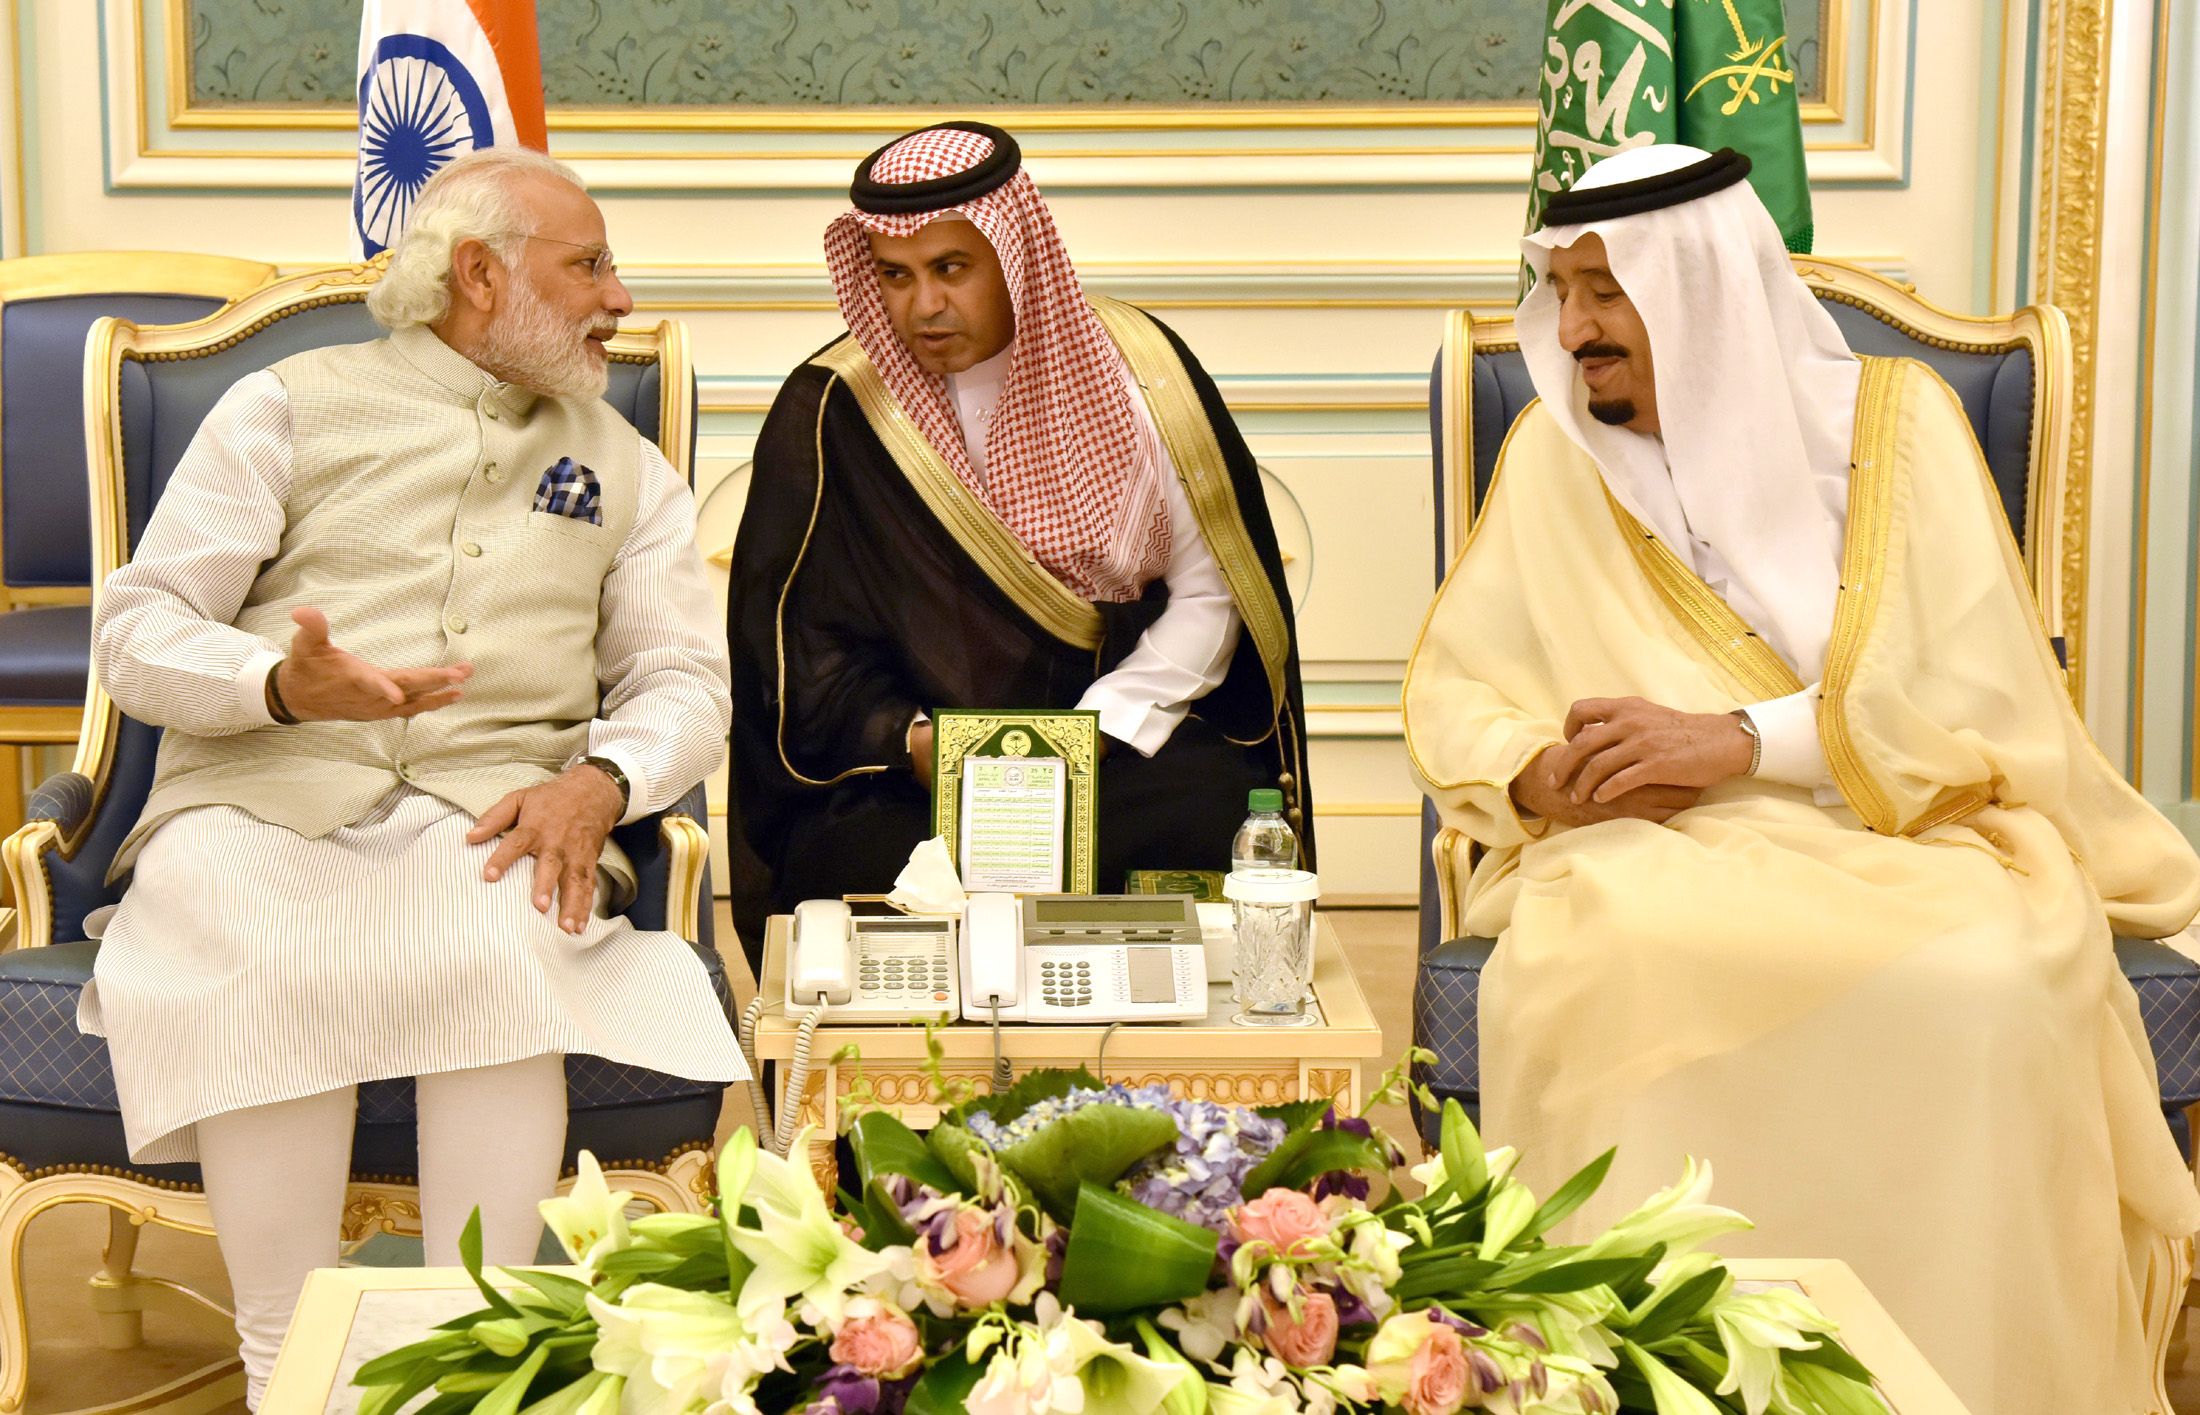 The Prime Minister, Shri Narendra Modi meeting the King Salman bin Abdul Aziz Al Saud of Saudi Arabia, at the Royal Court, in Riyadh, Saudi Arabia on April 03, 2016.